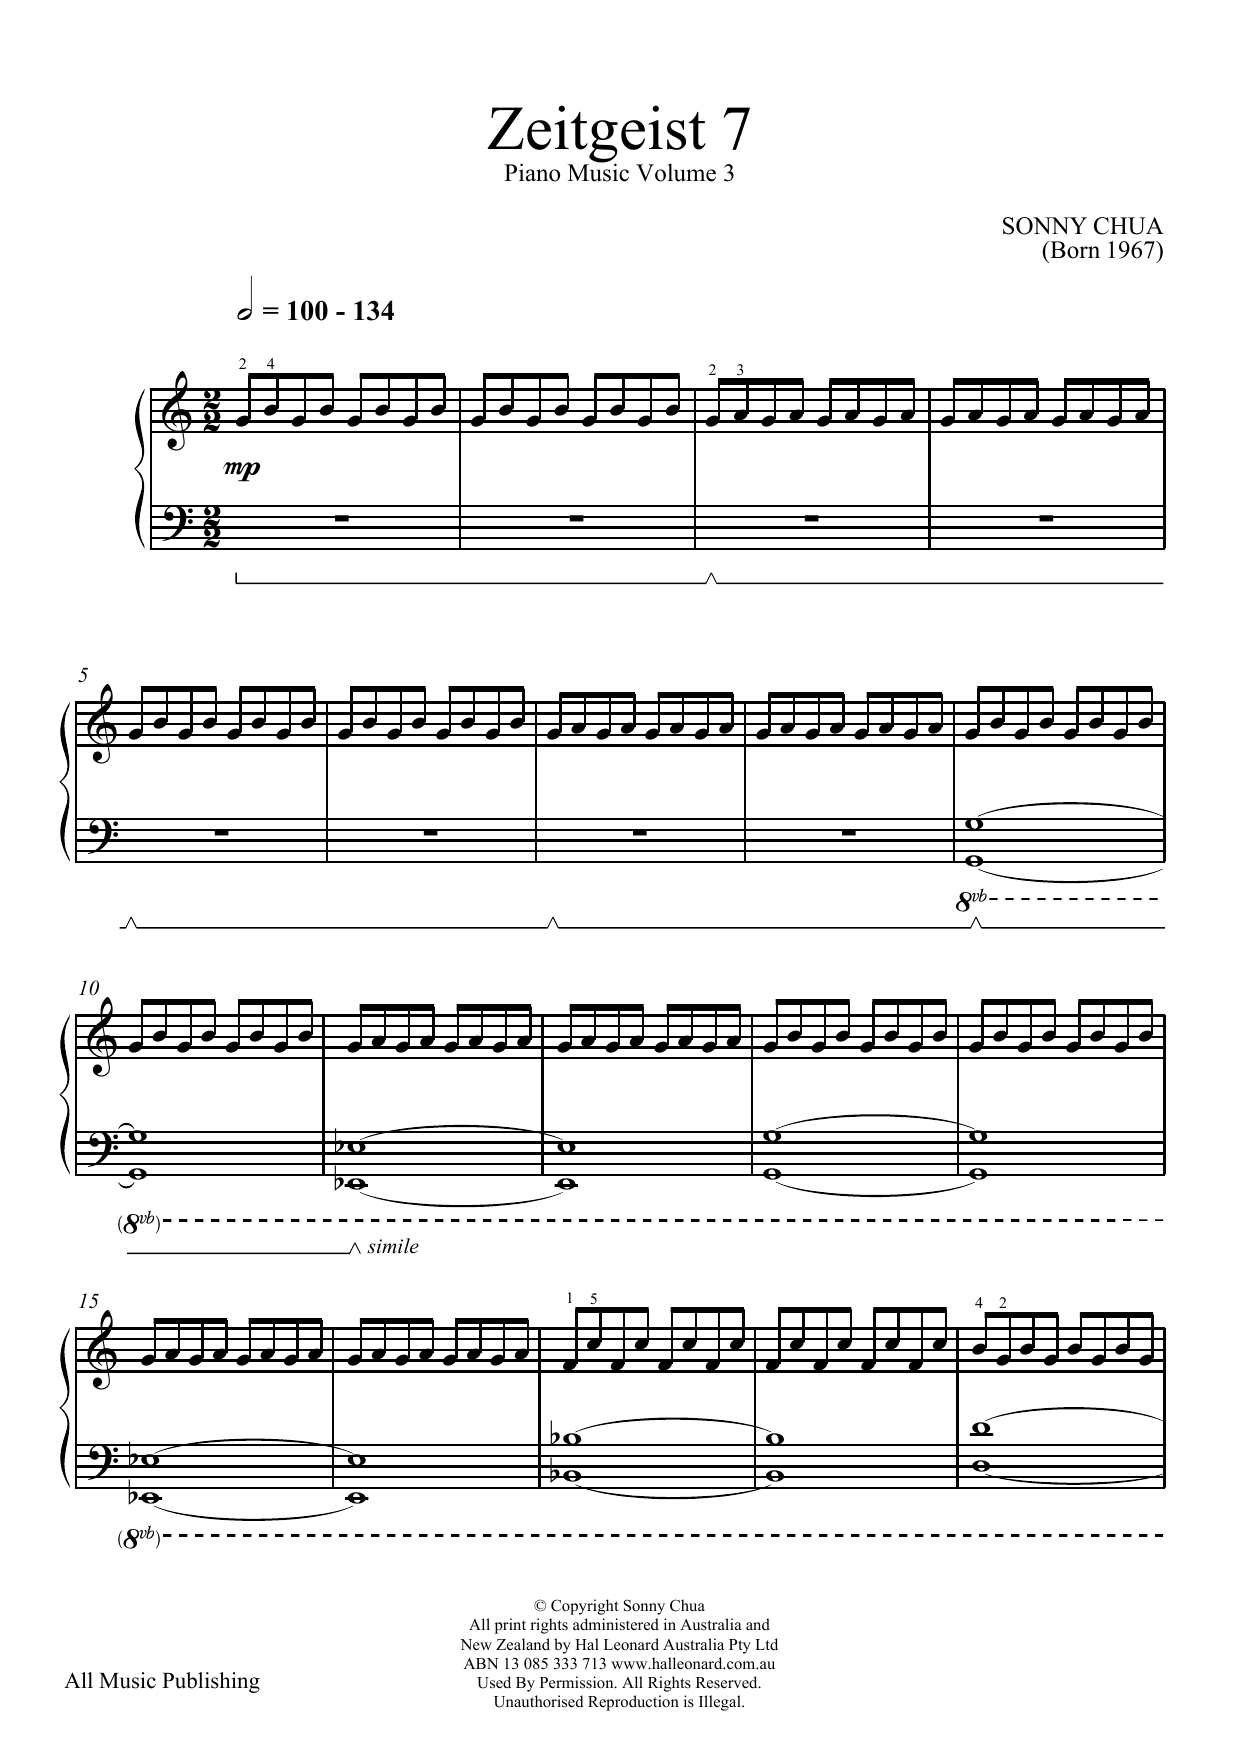 Sonny Chua Zeitgeist 7 (From Piano Music Vol 3) sheet music notes and chords. Download Printable PDF.